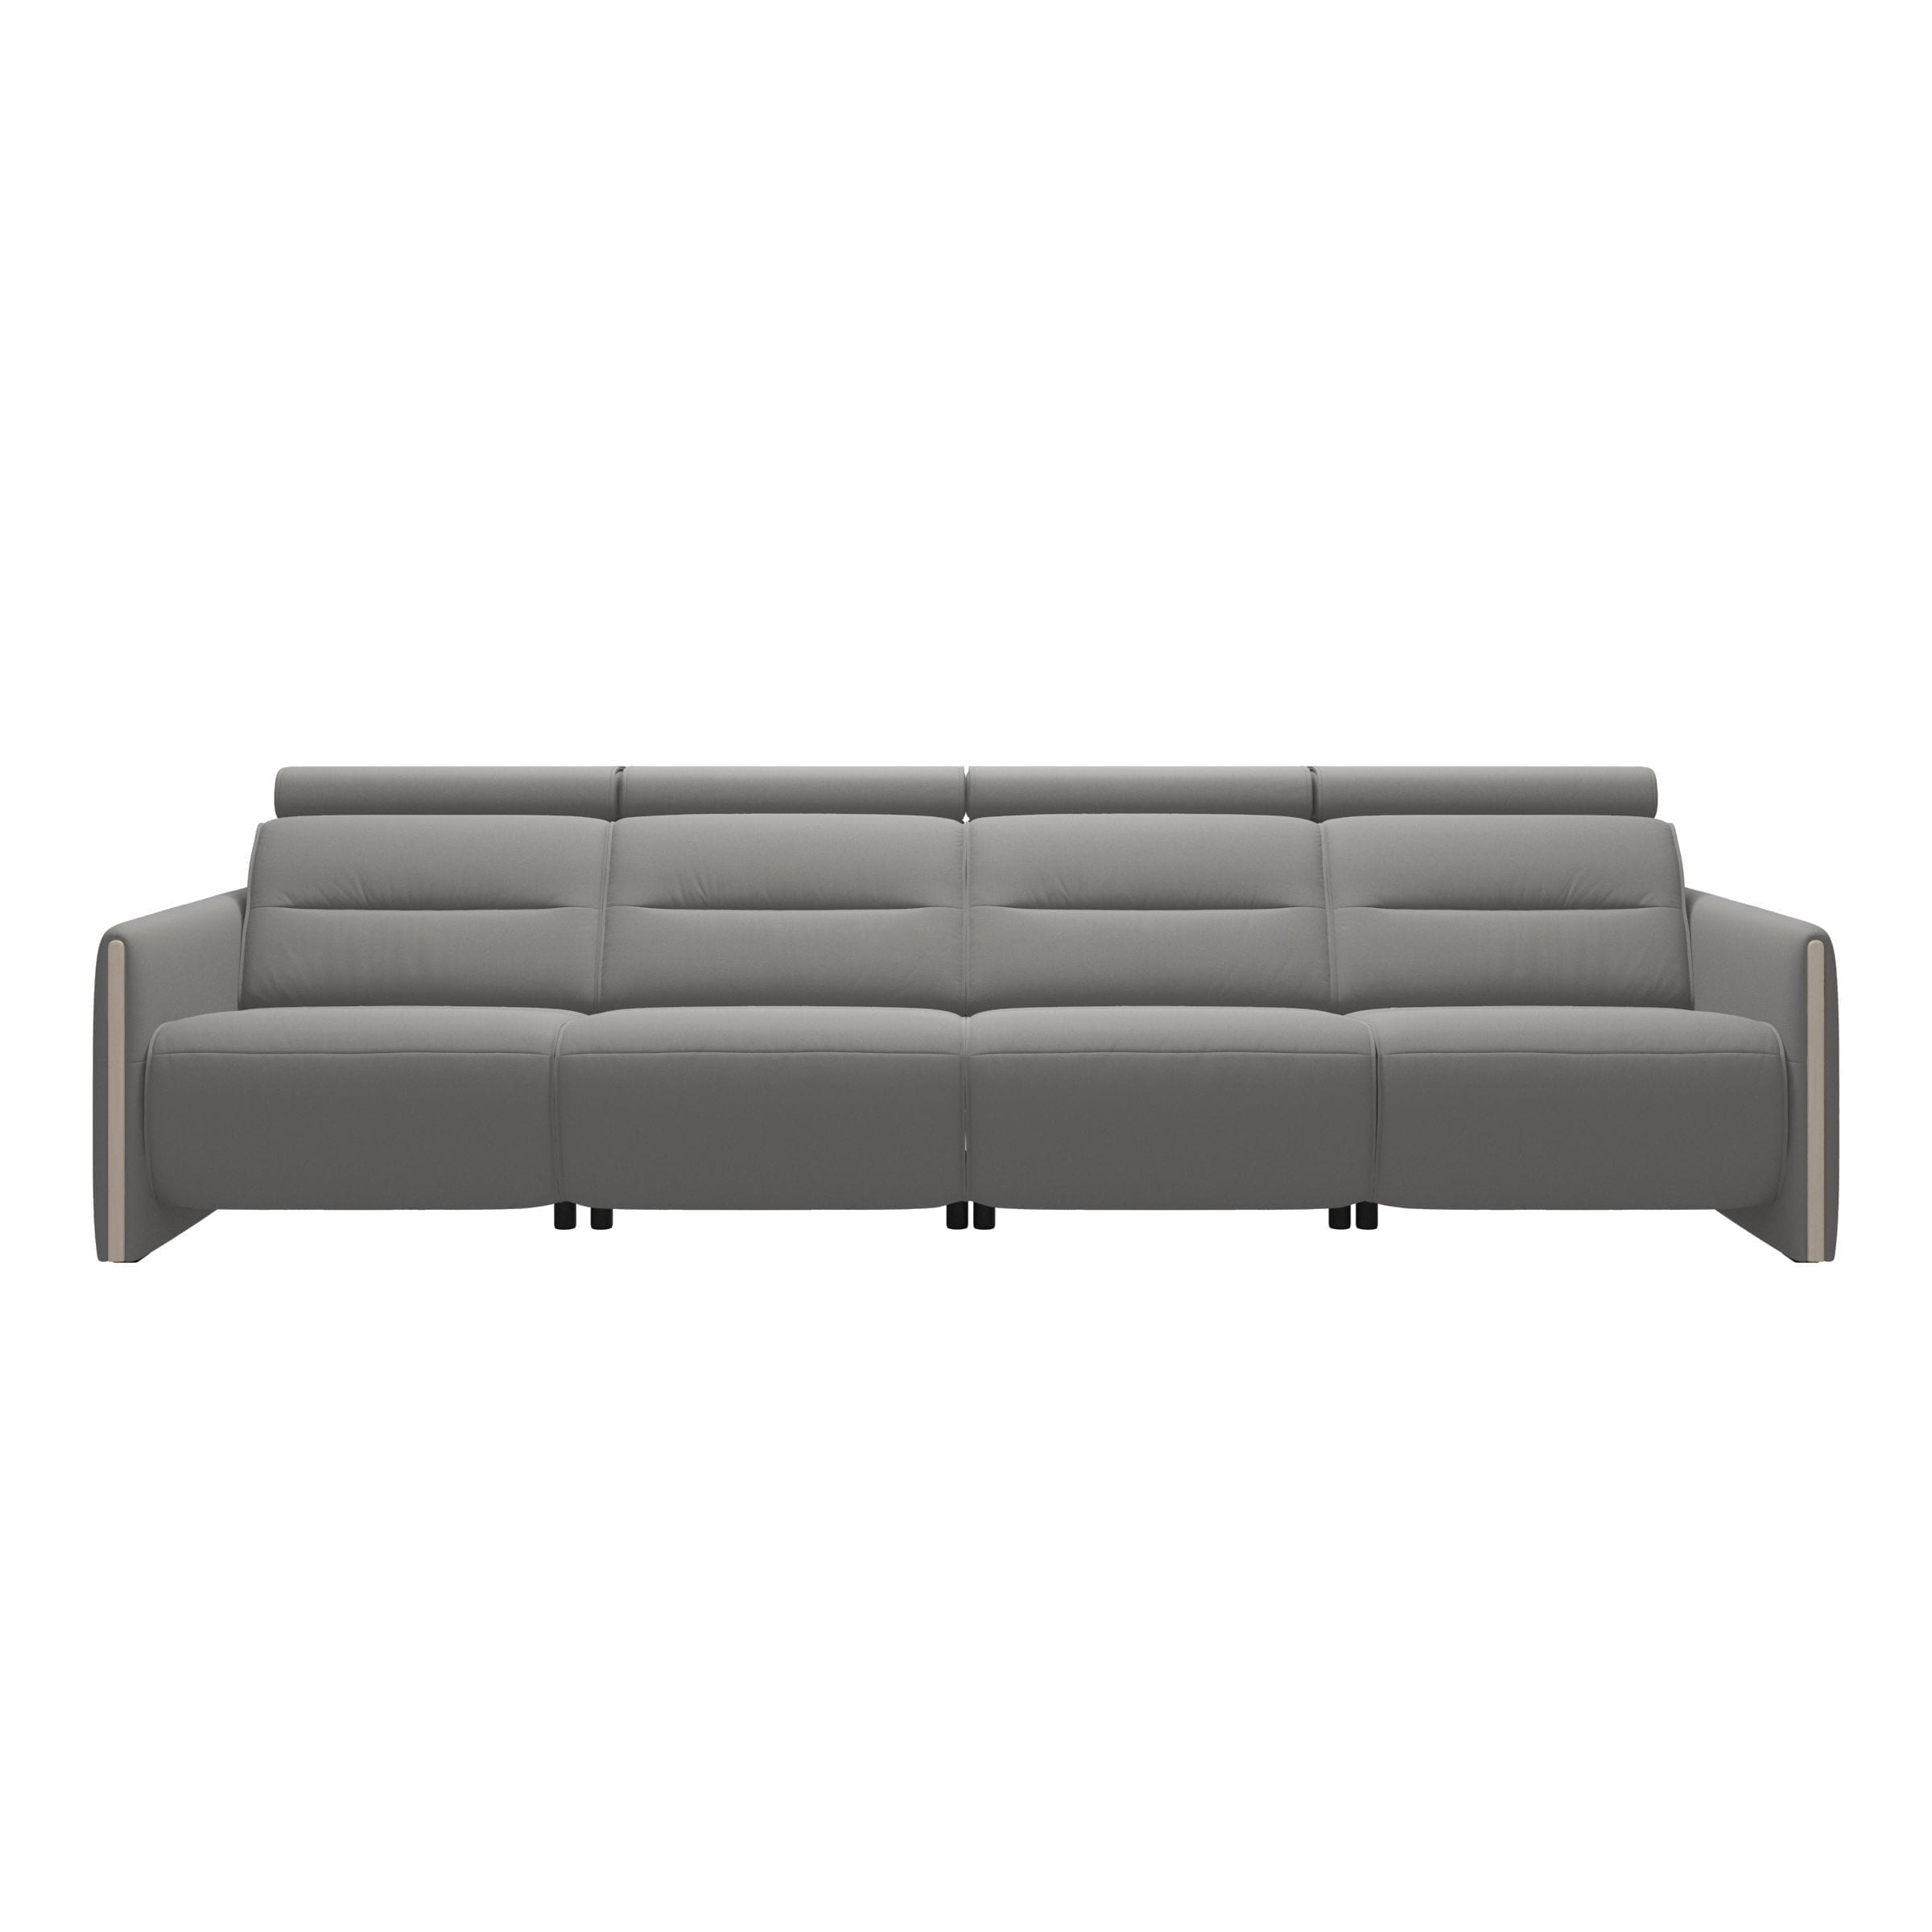 Emily Wood 4 Seater Power 1